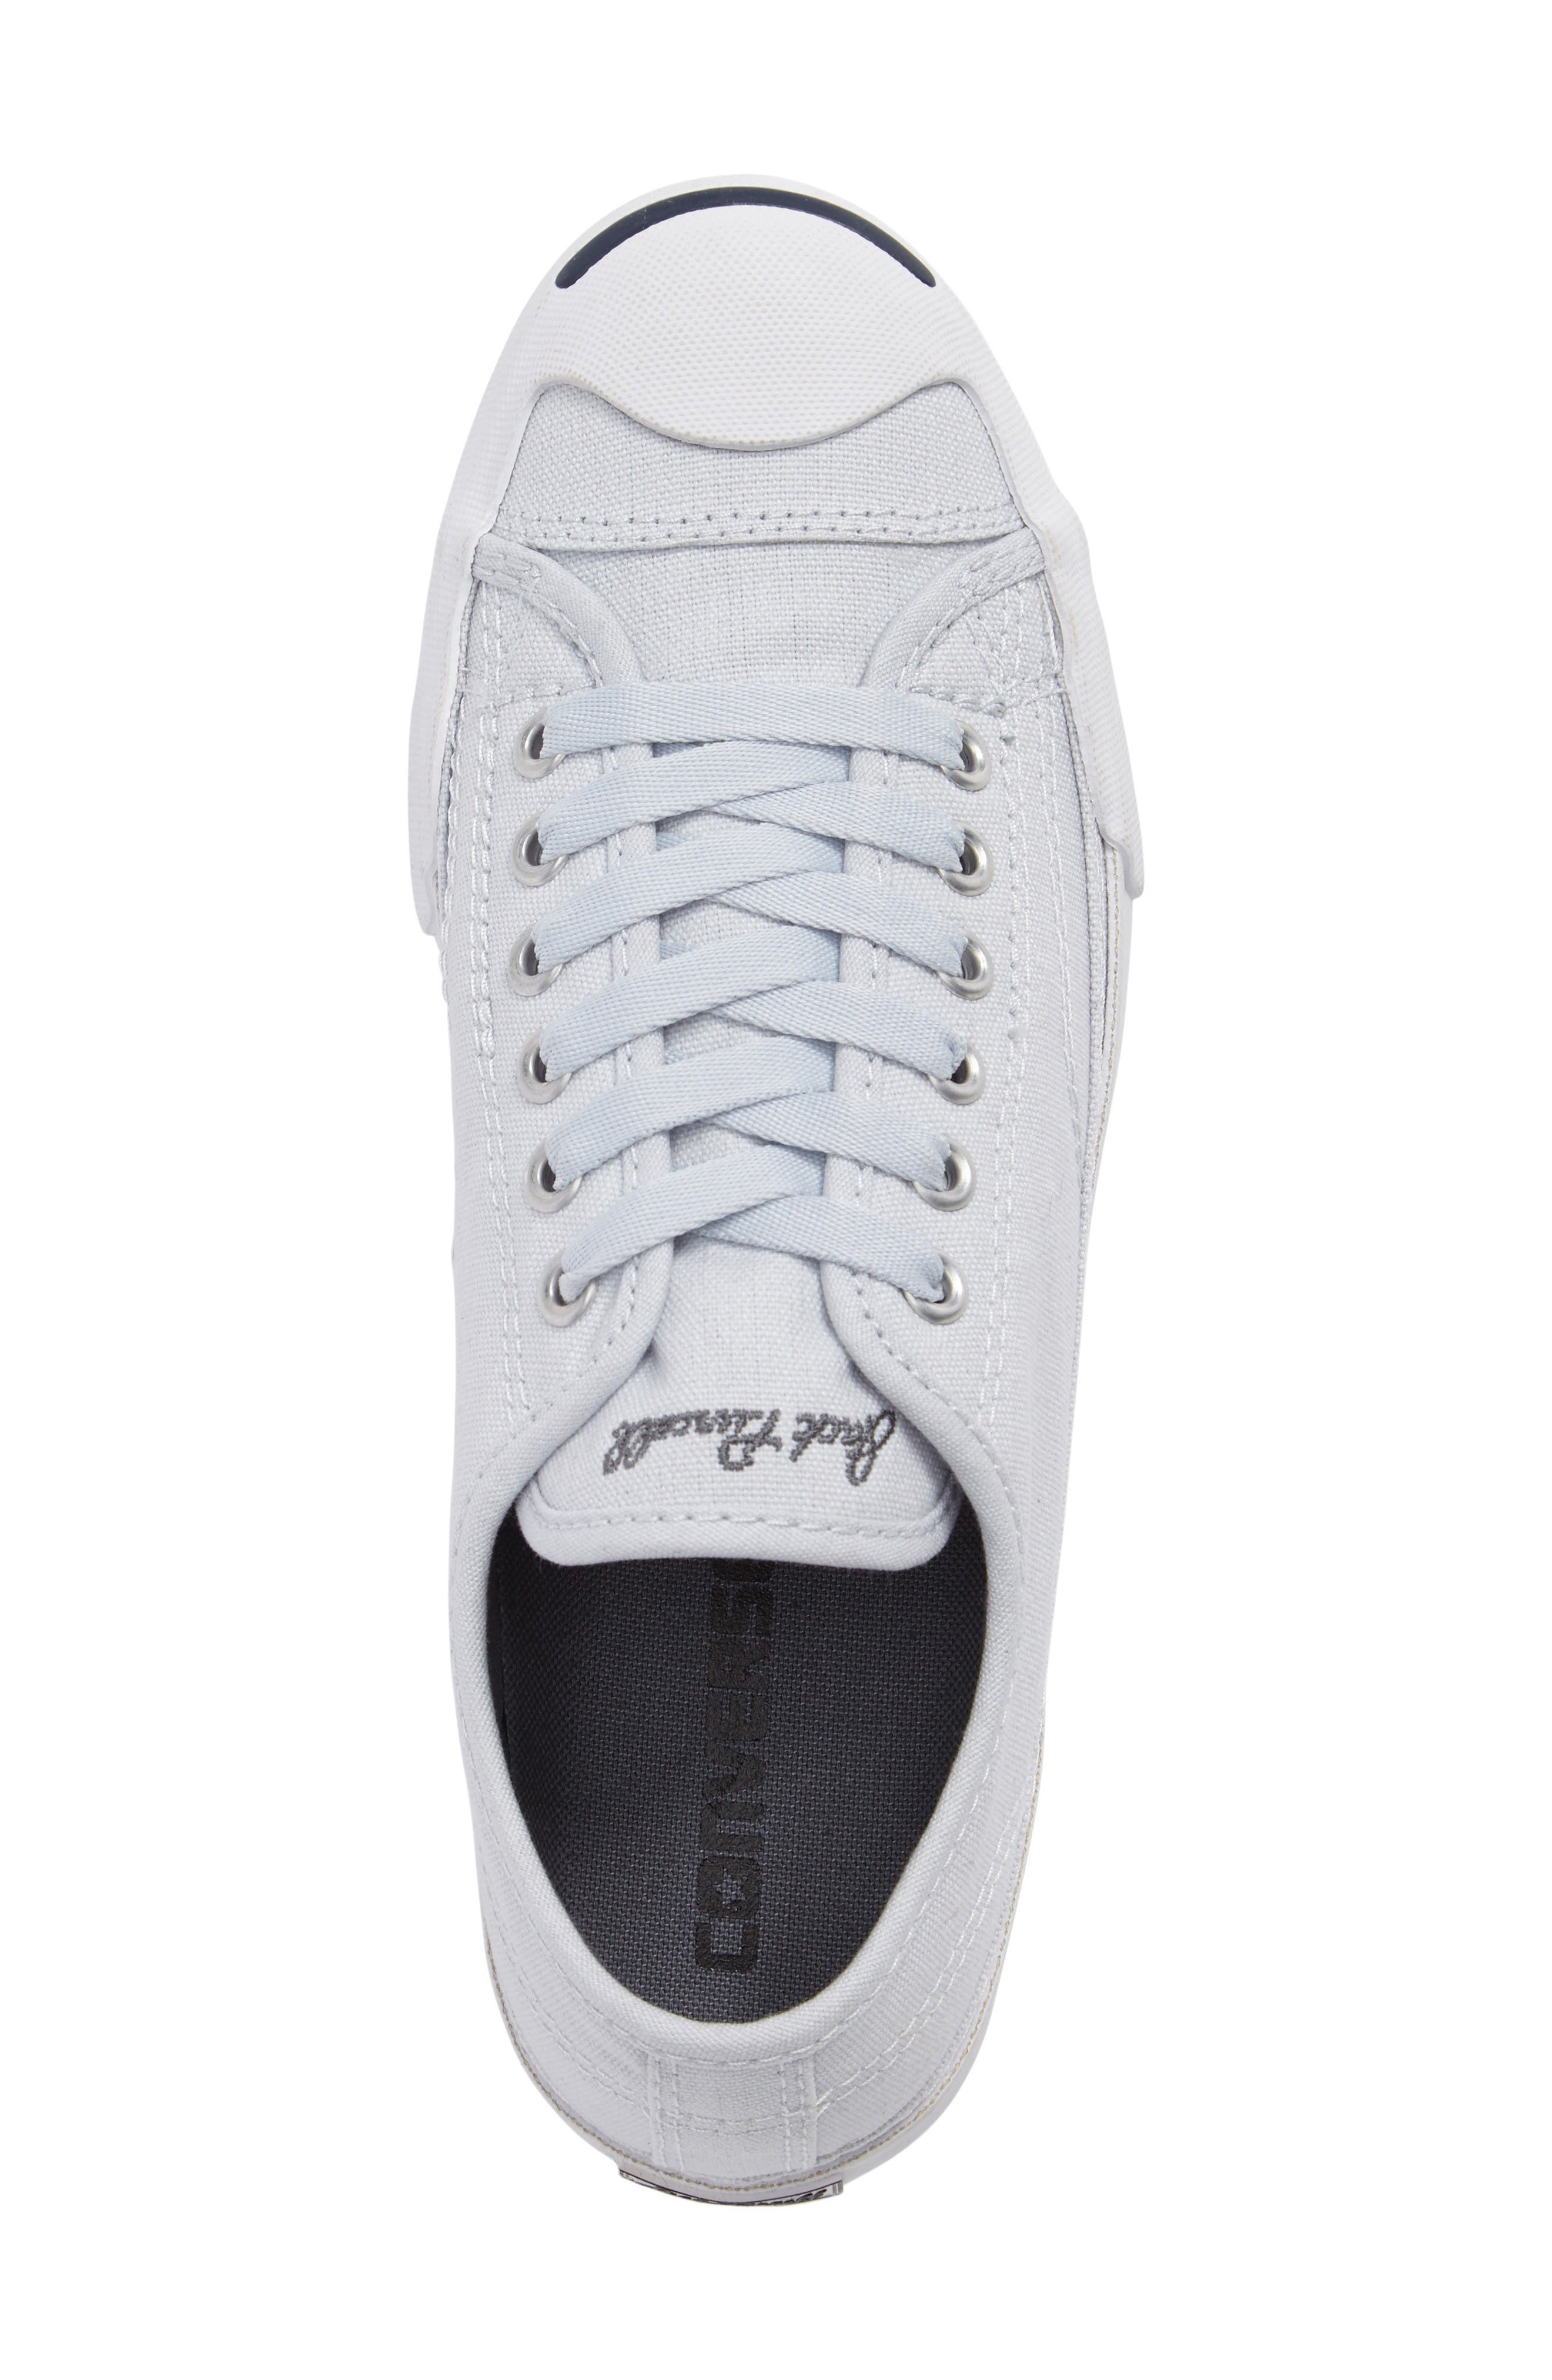 Jack Purcell Signature Ox Low Top Sneaker,                             Alternate thumbnail 4, color,                             Platinum